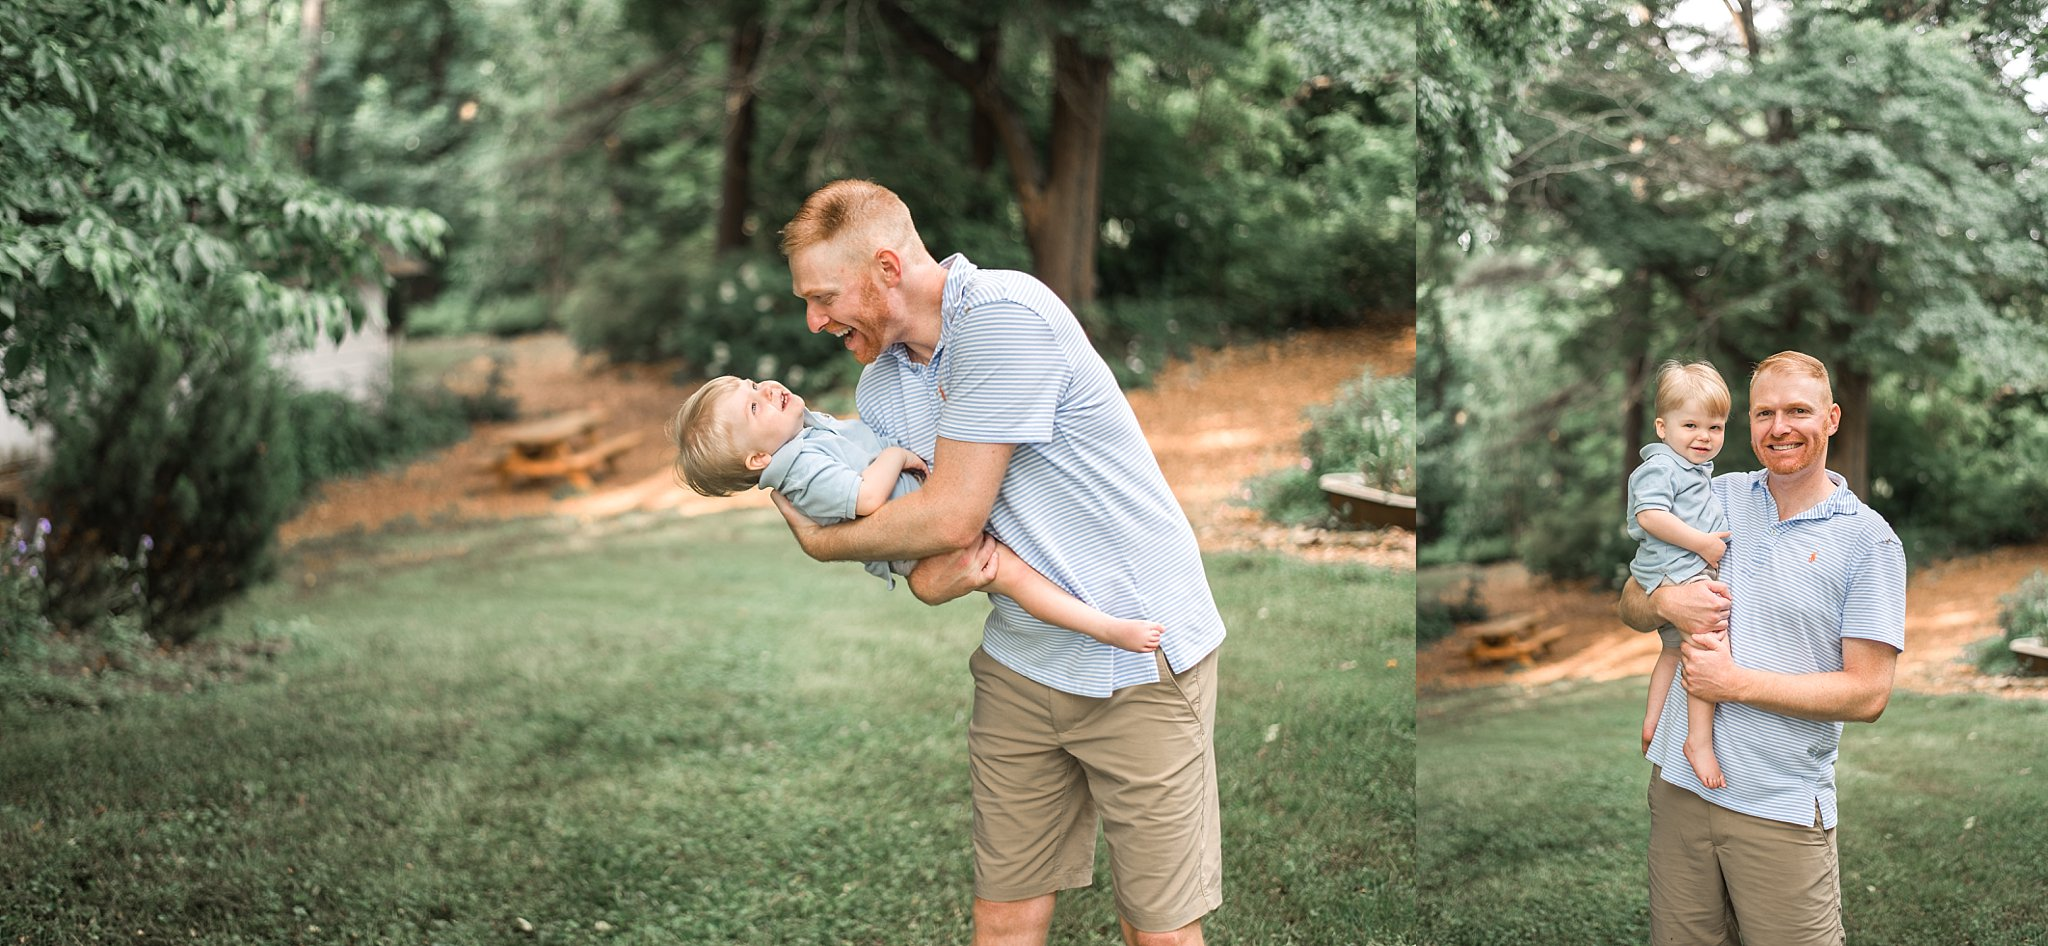 pictures of father and son playing